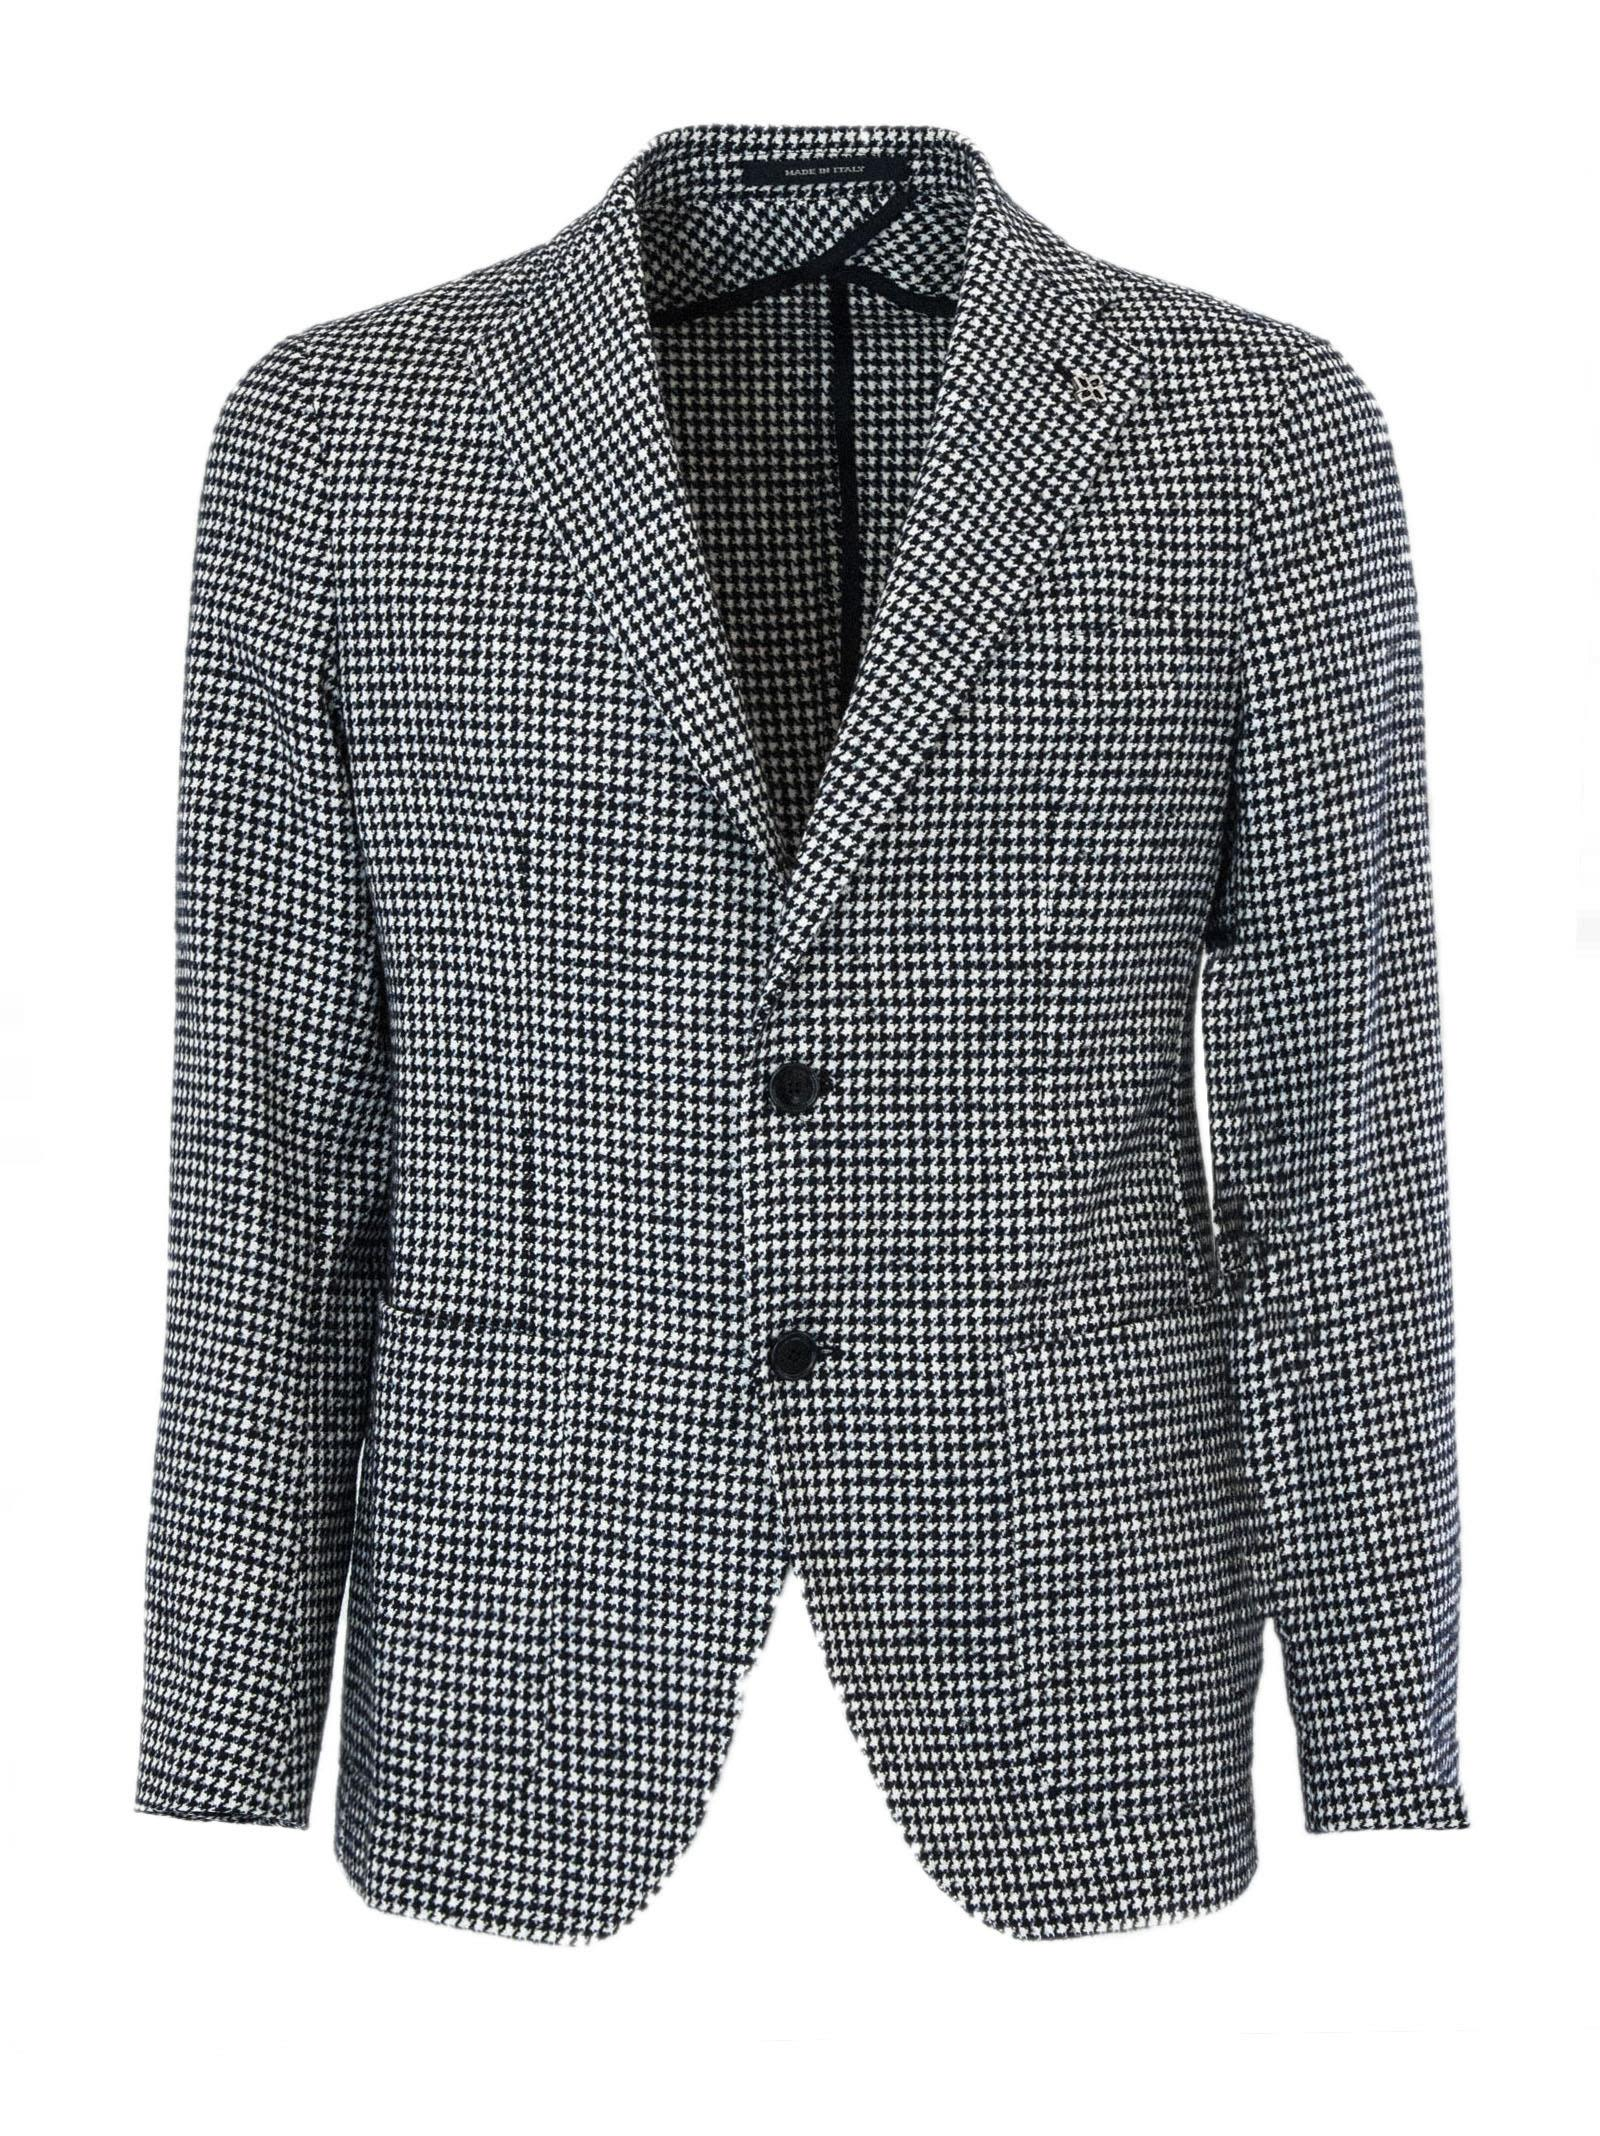 Black And White Wool And Cotton Jacket.